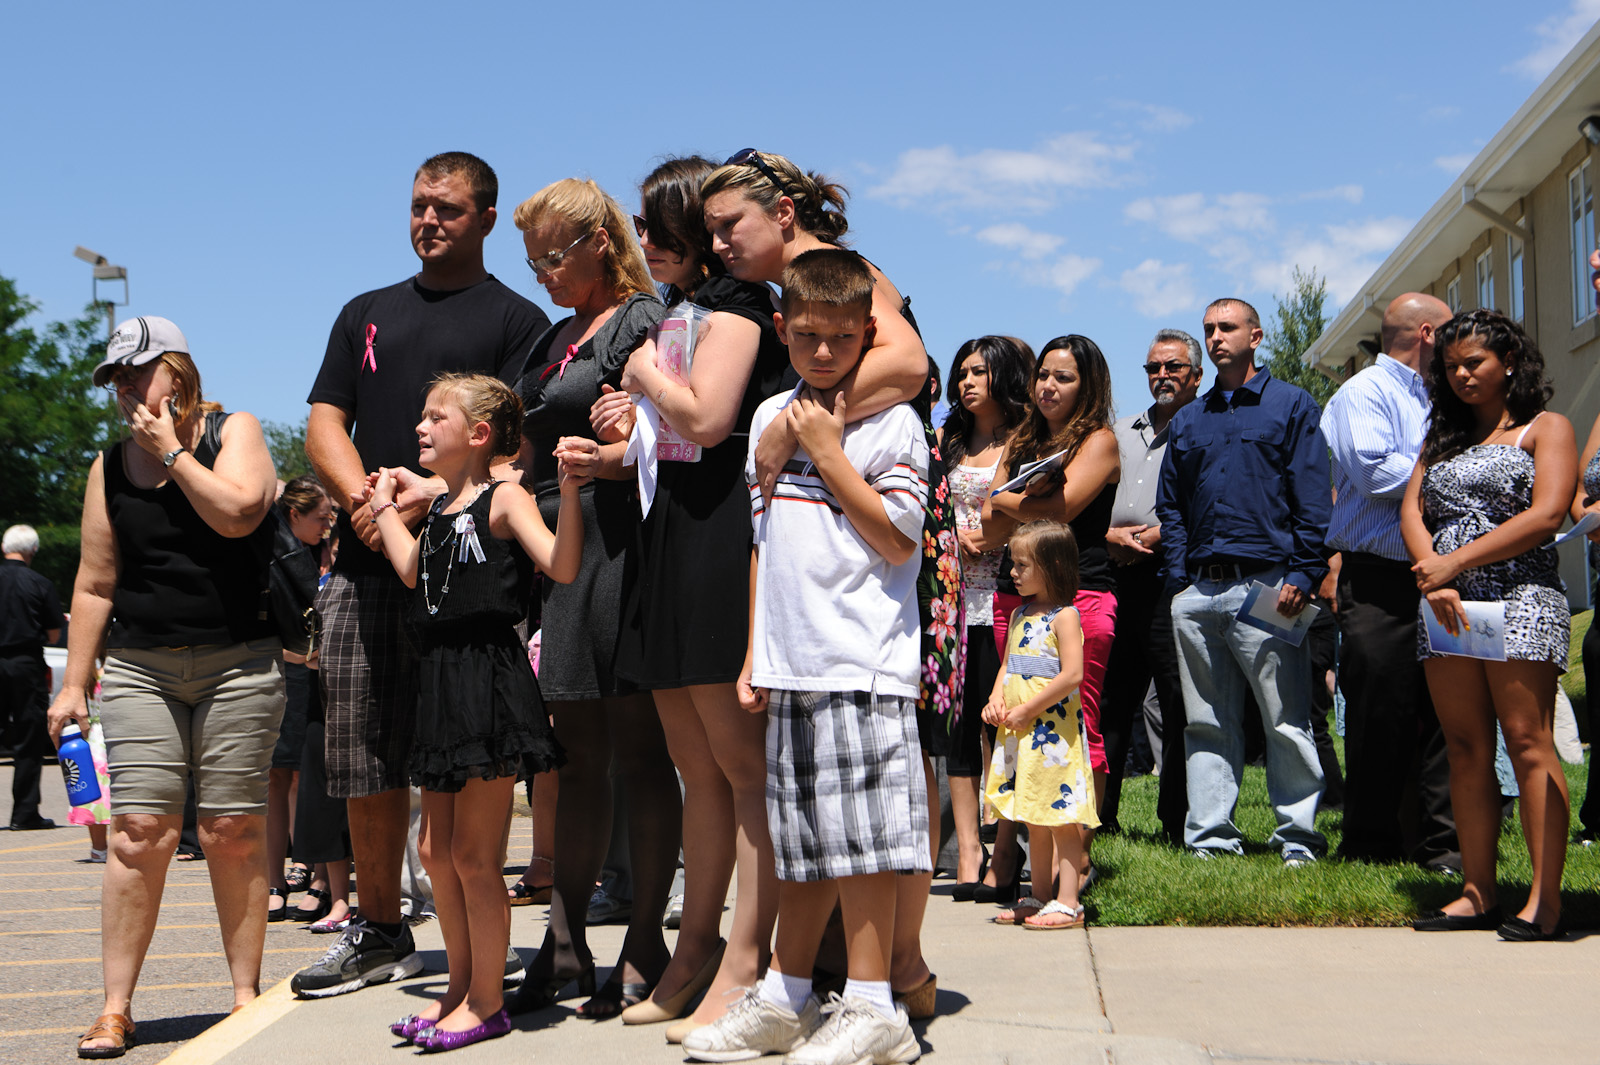 Aurora shooting rampage victim Micayla Medek funeral